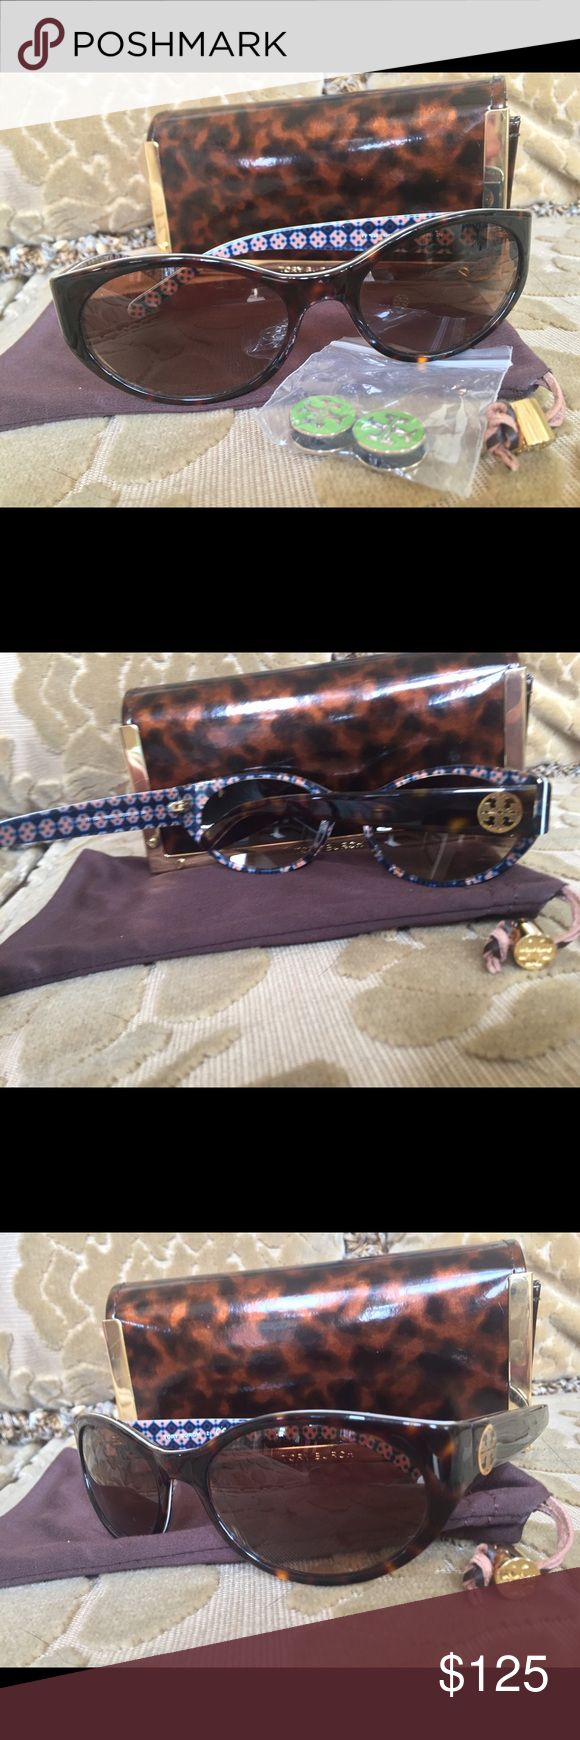 Tory Butch Sunglasses with case, cleaning pouch. Excellent condition! AUTHENTIC glasses, pouch and tortoise case! Sold out on most major online stores! Tory Burch Accessories Sunglasses